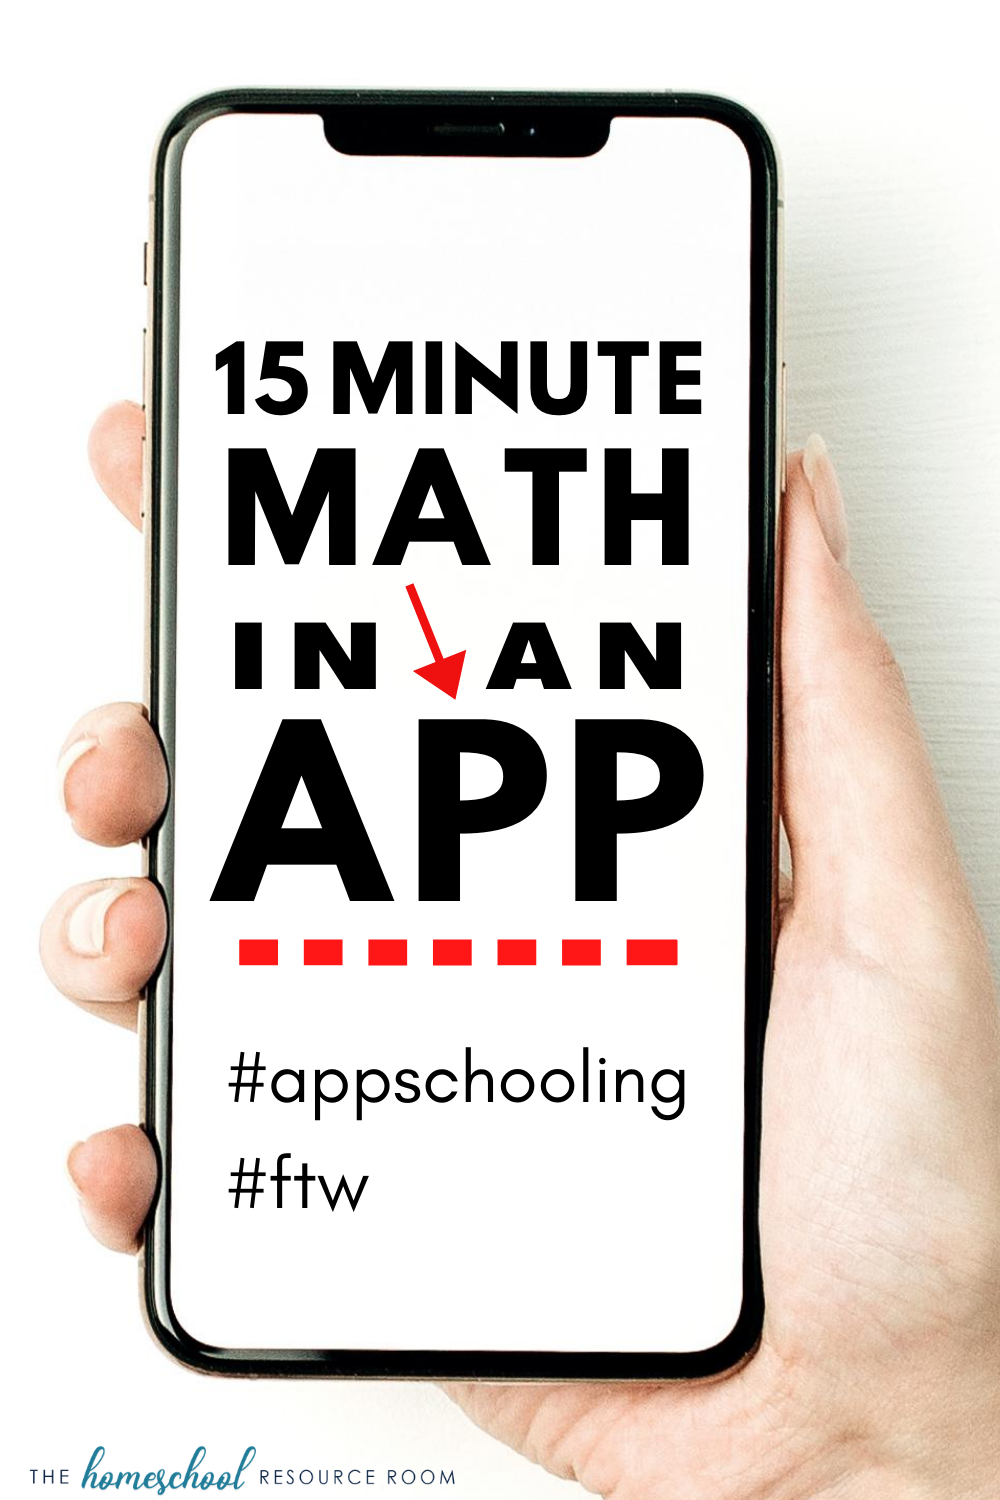 Online Math Curriculum in an App?!? Our no holds barred Smartick review. #homeschooling #math #homeschoolcurriculum